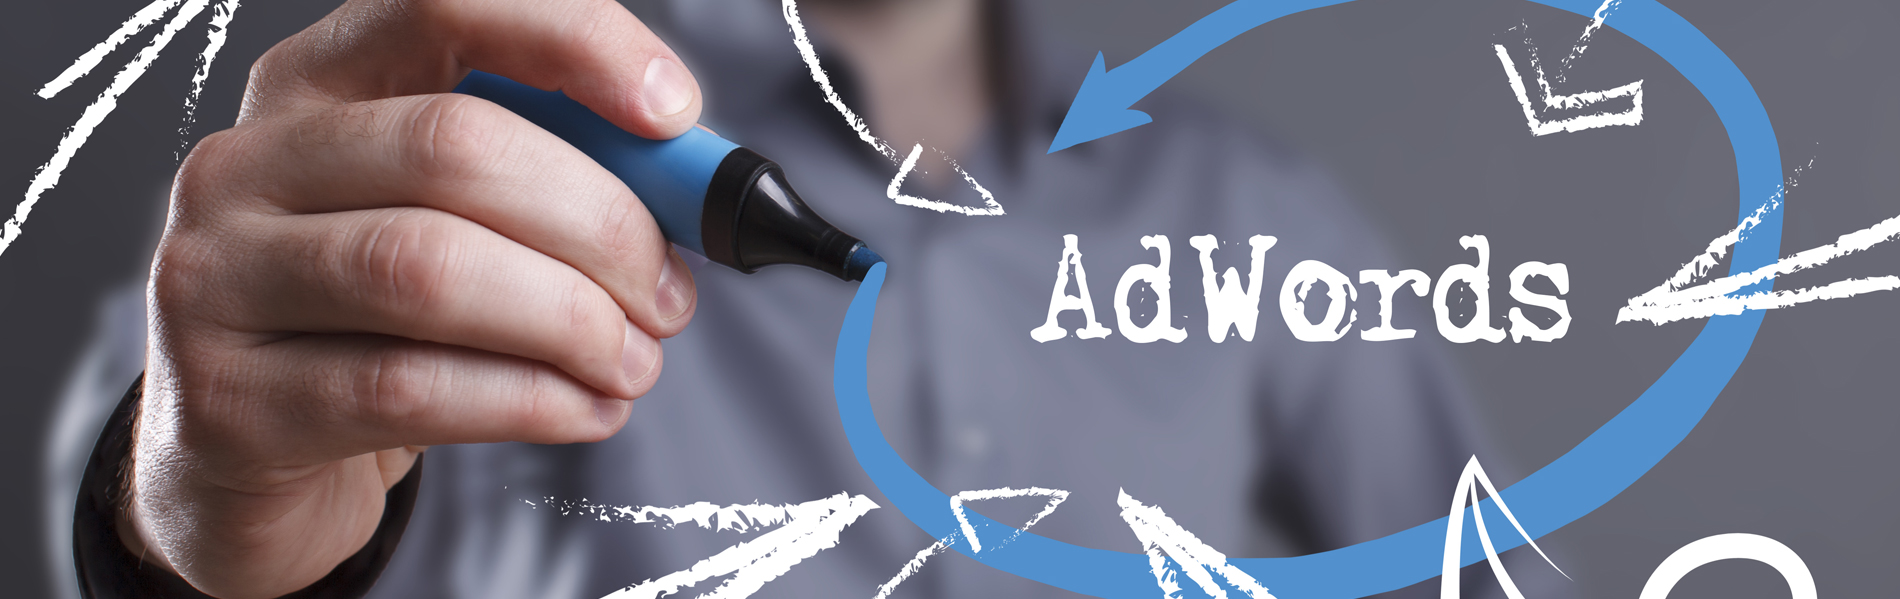 5-Good-Reasons-To-Use-Google-Adwords-To-Advertise-Your-Business-Website